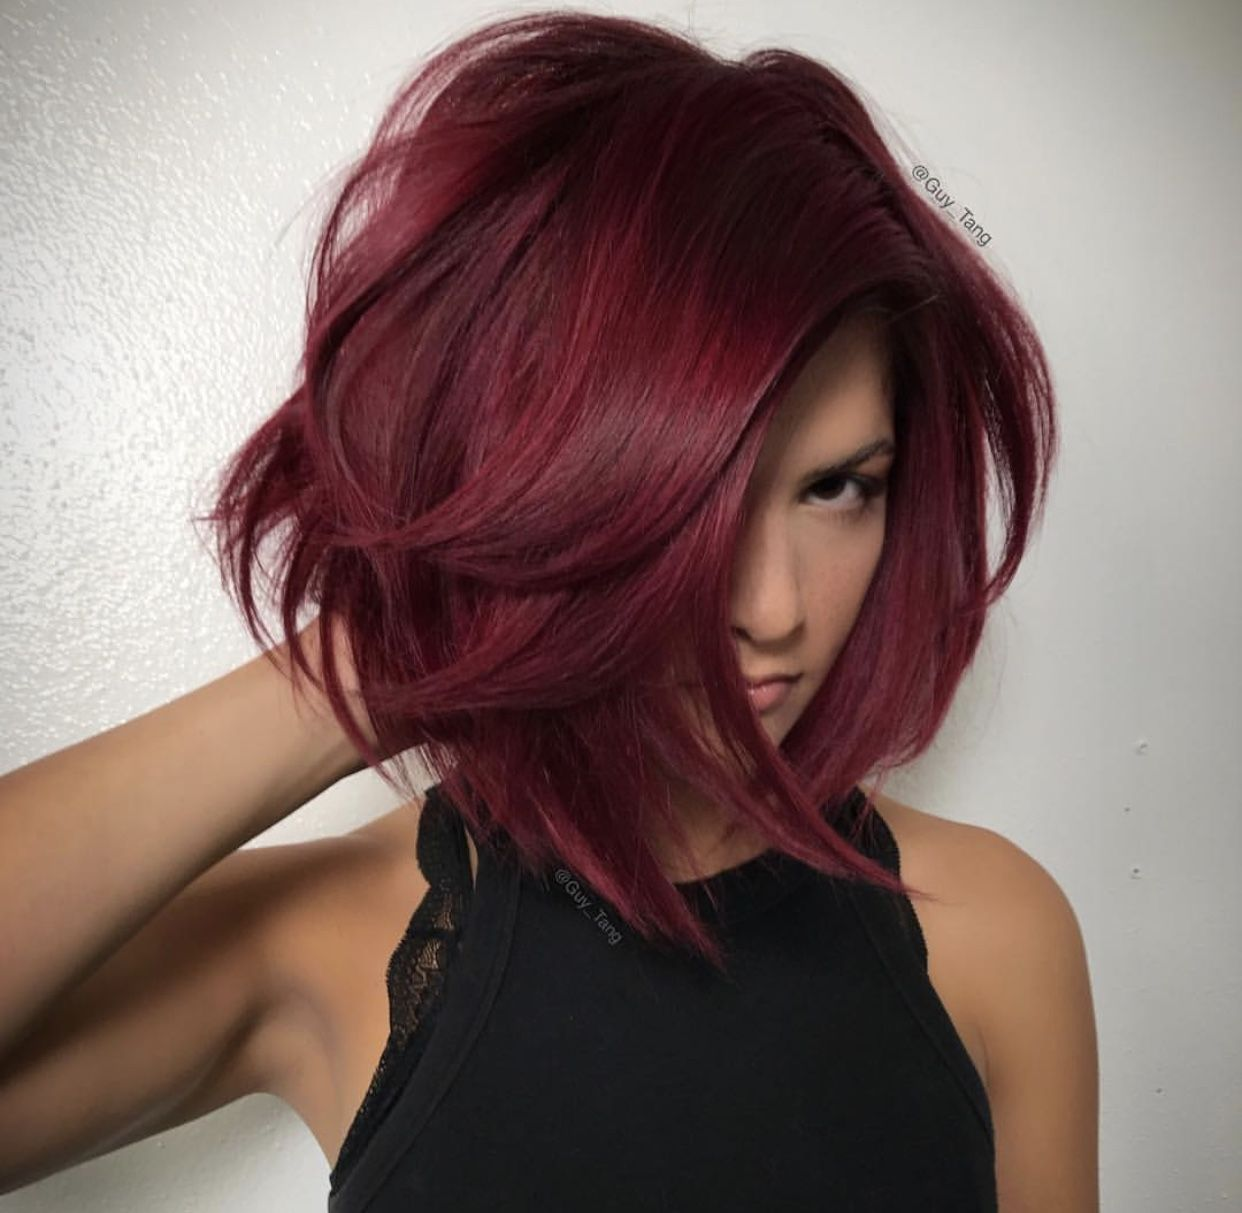 Red Raspberry hair color for Fall